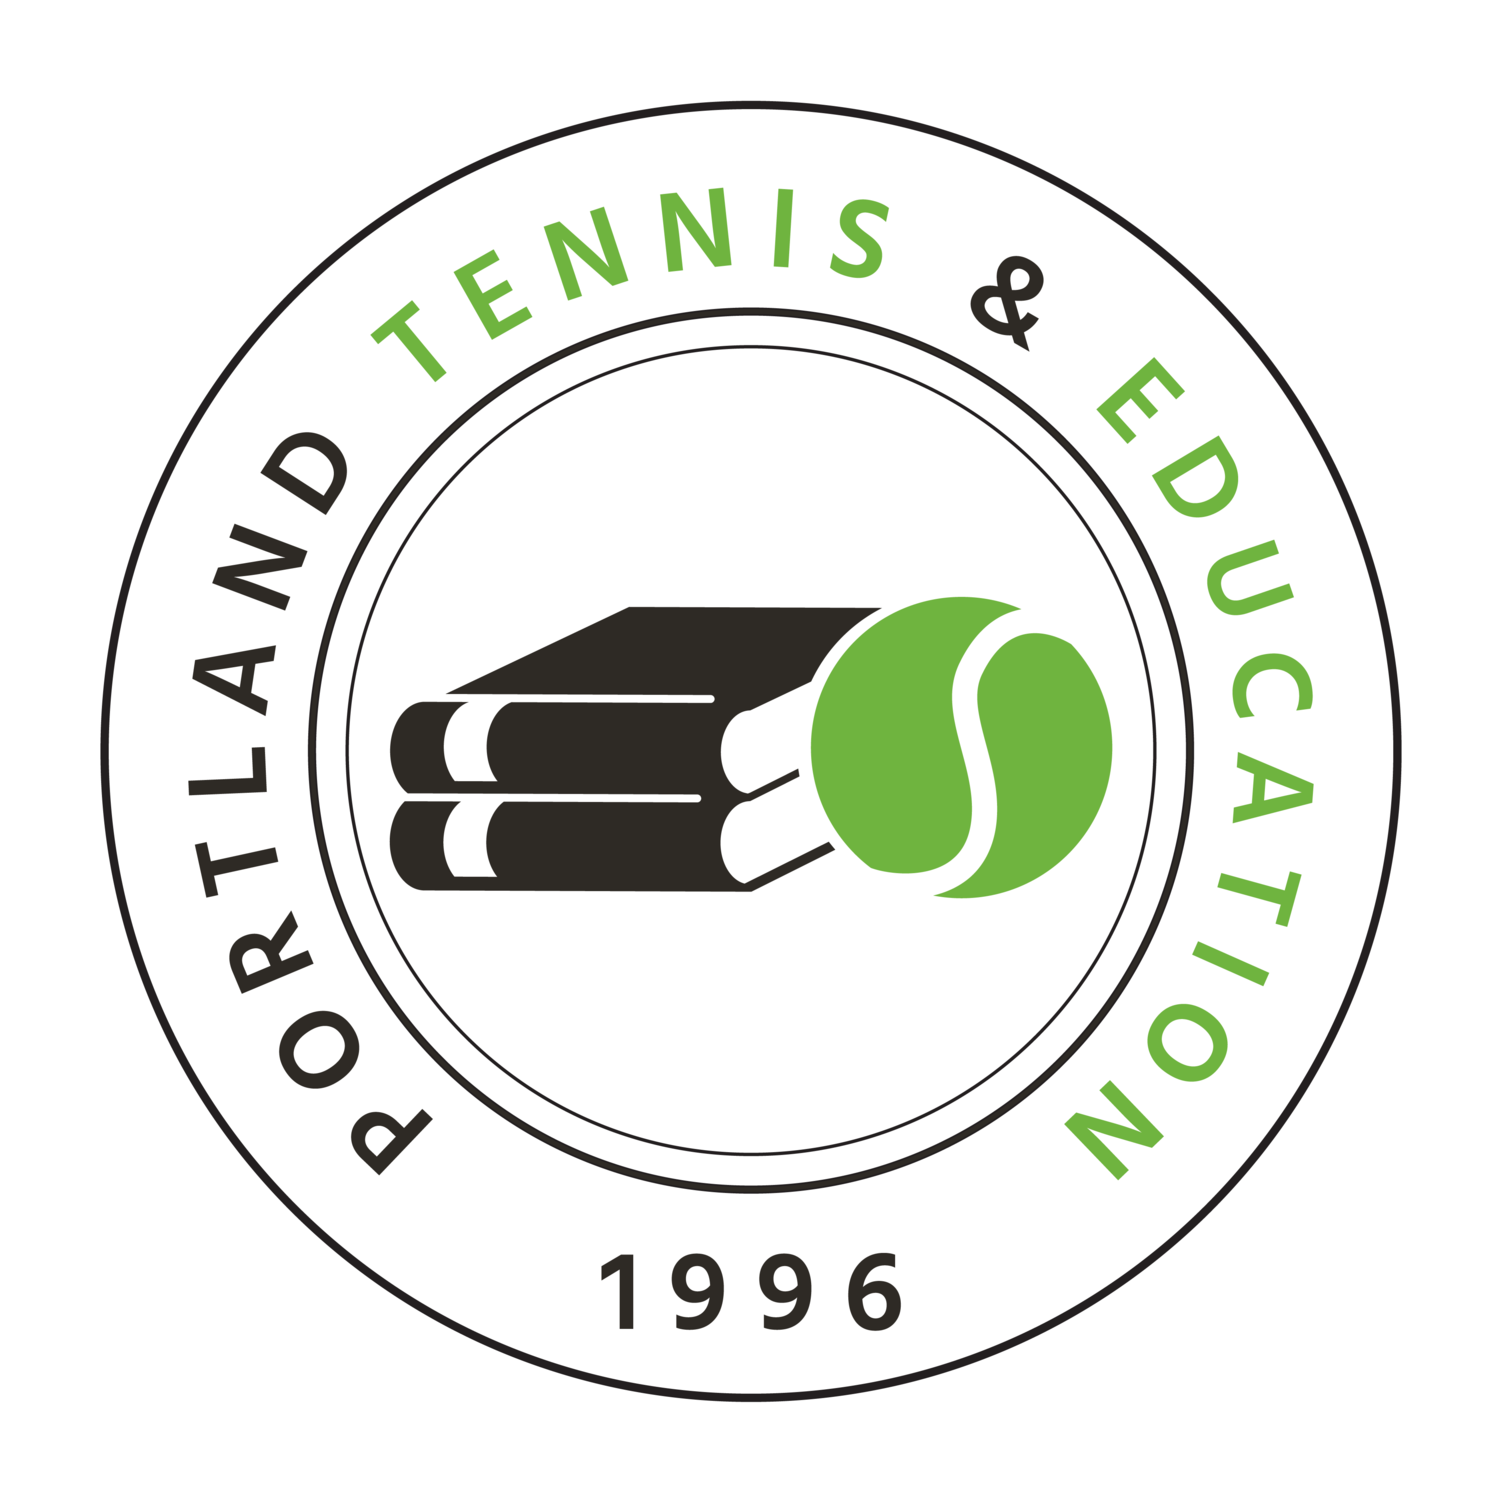 Portland Tennis & Education